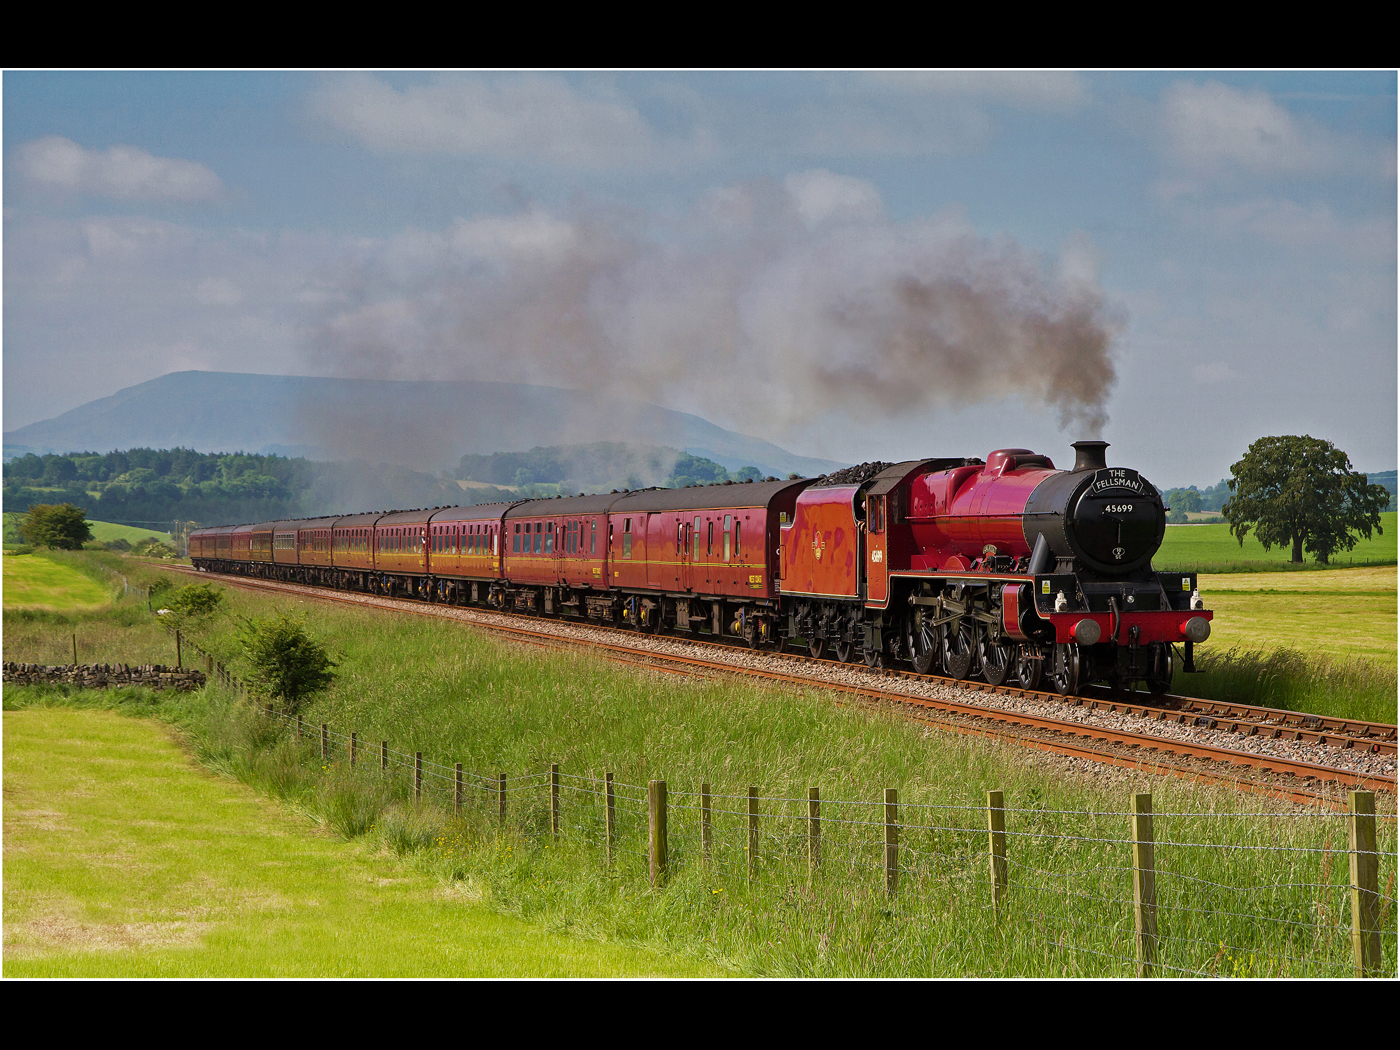 The Fellsman passing Pendle Hill